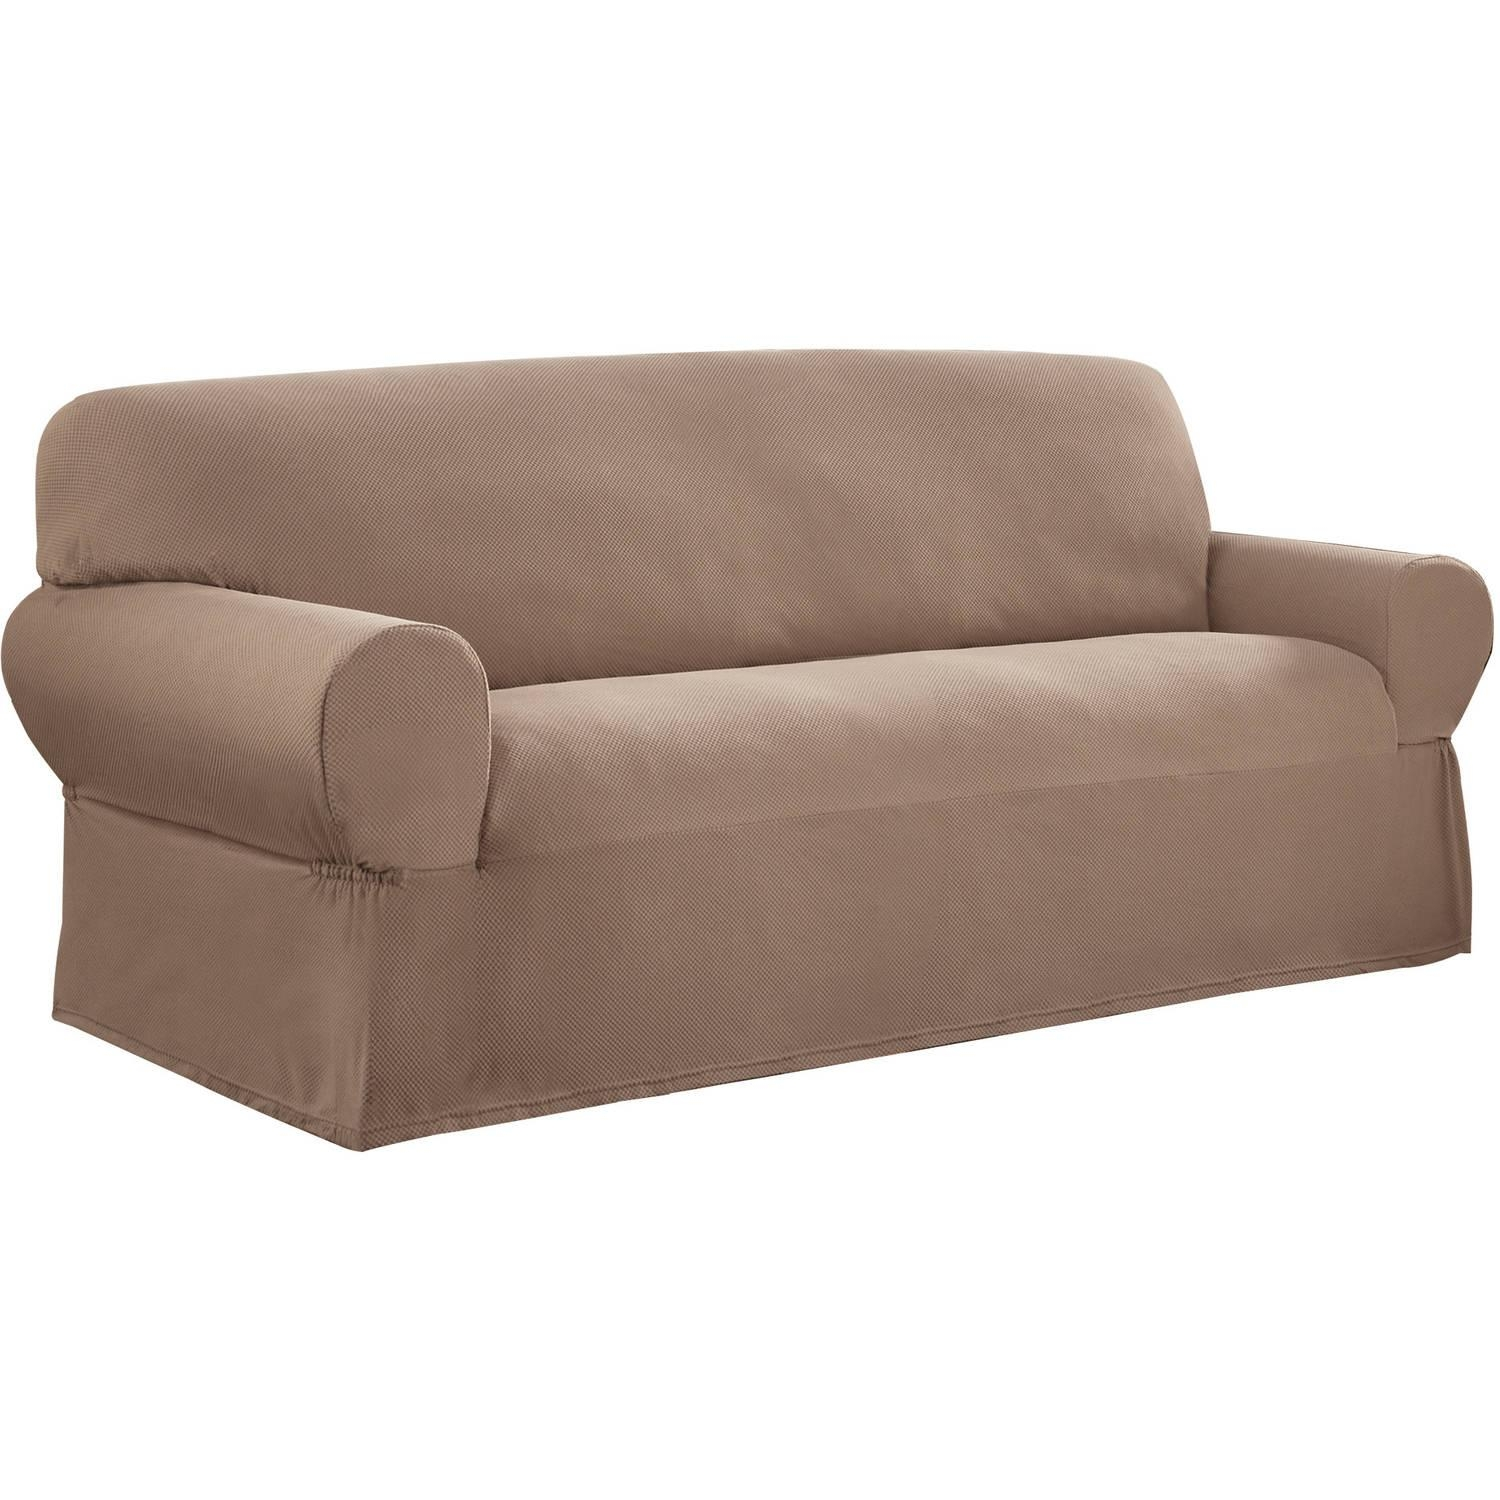 Furniture: Sofa Covers Walmart | Walmart Couch Covers | Slip With Covers For Sofas (View 10 of 20)